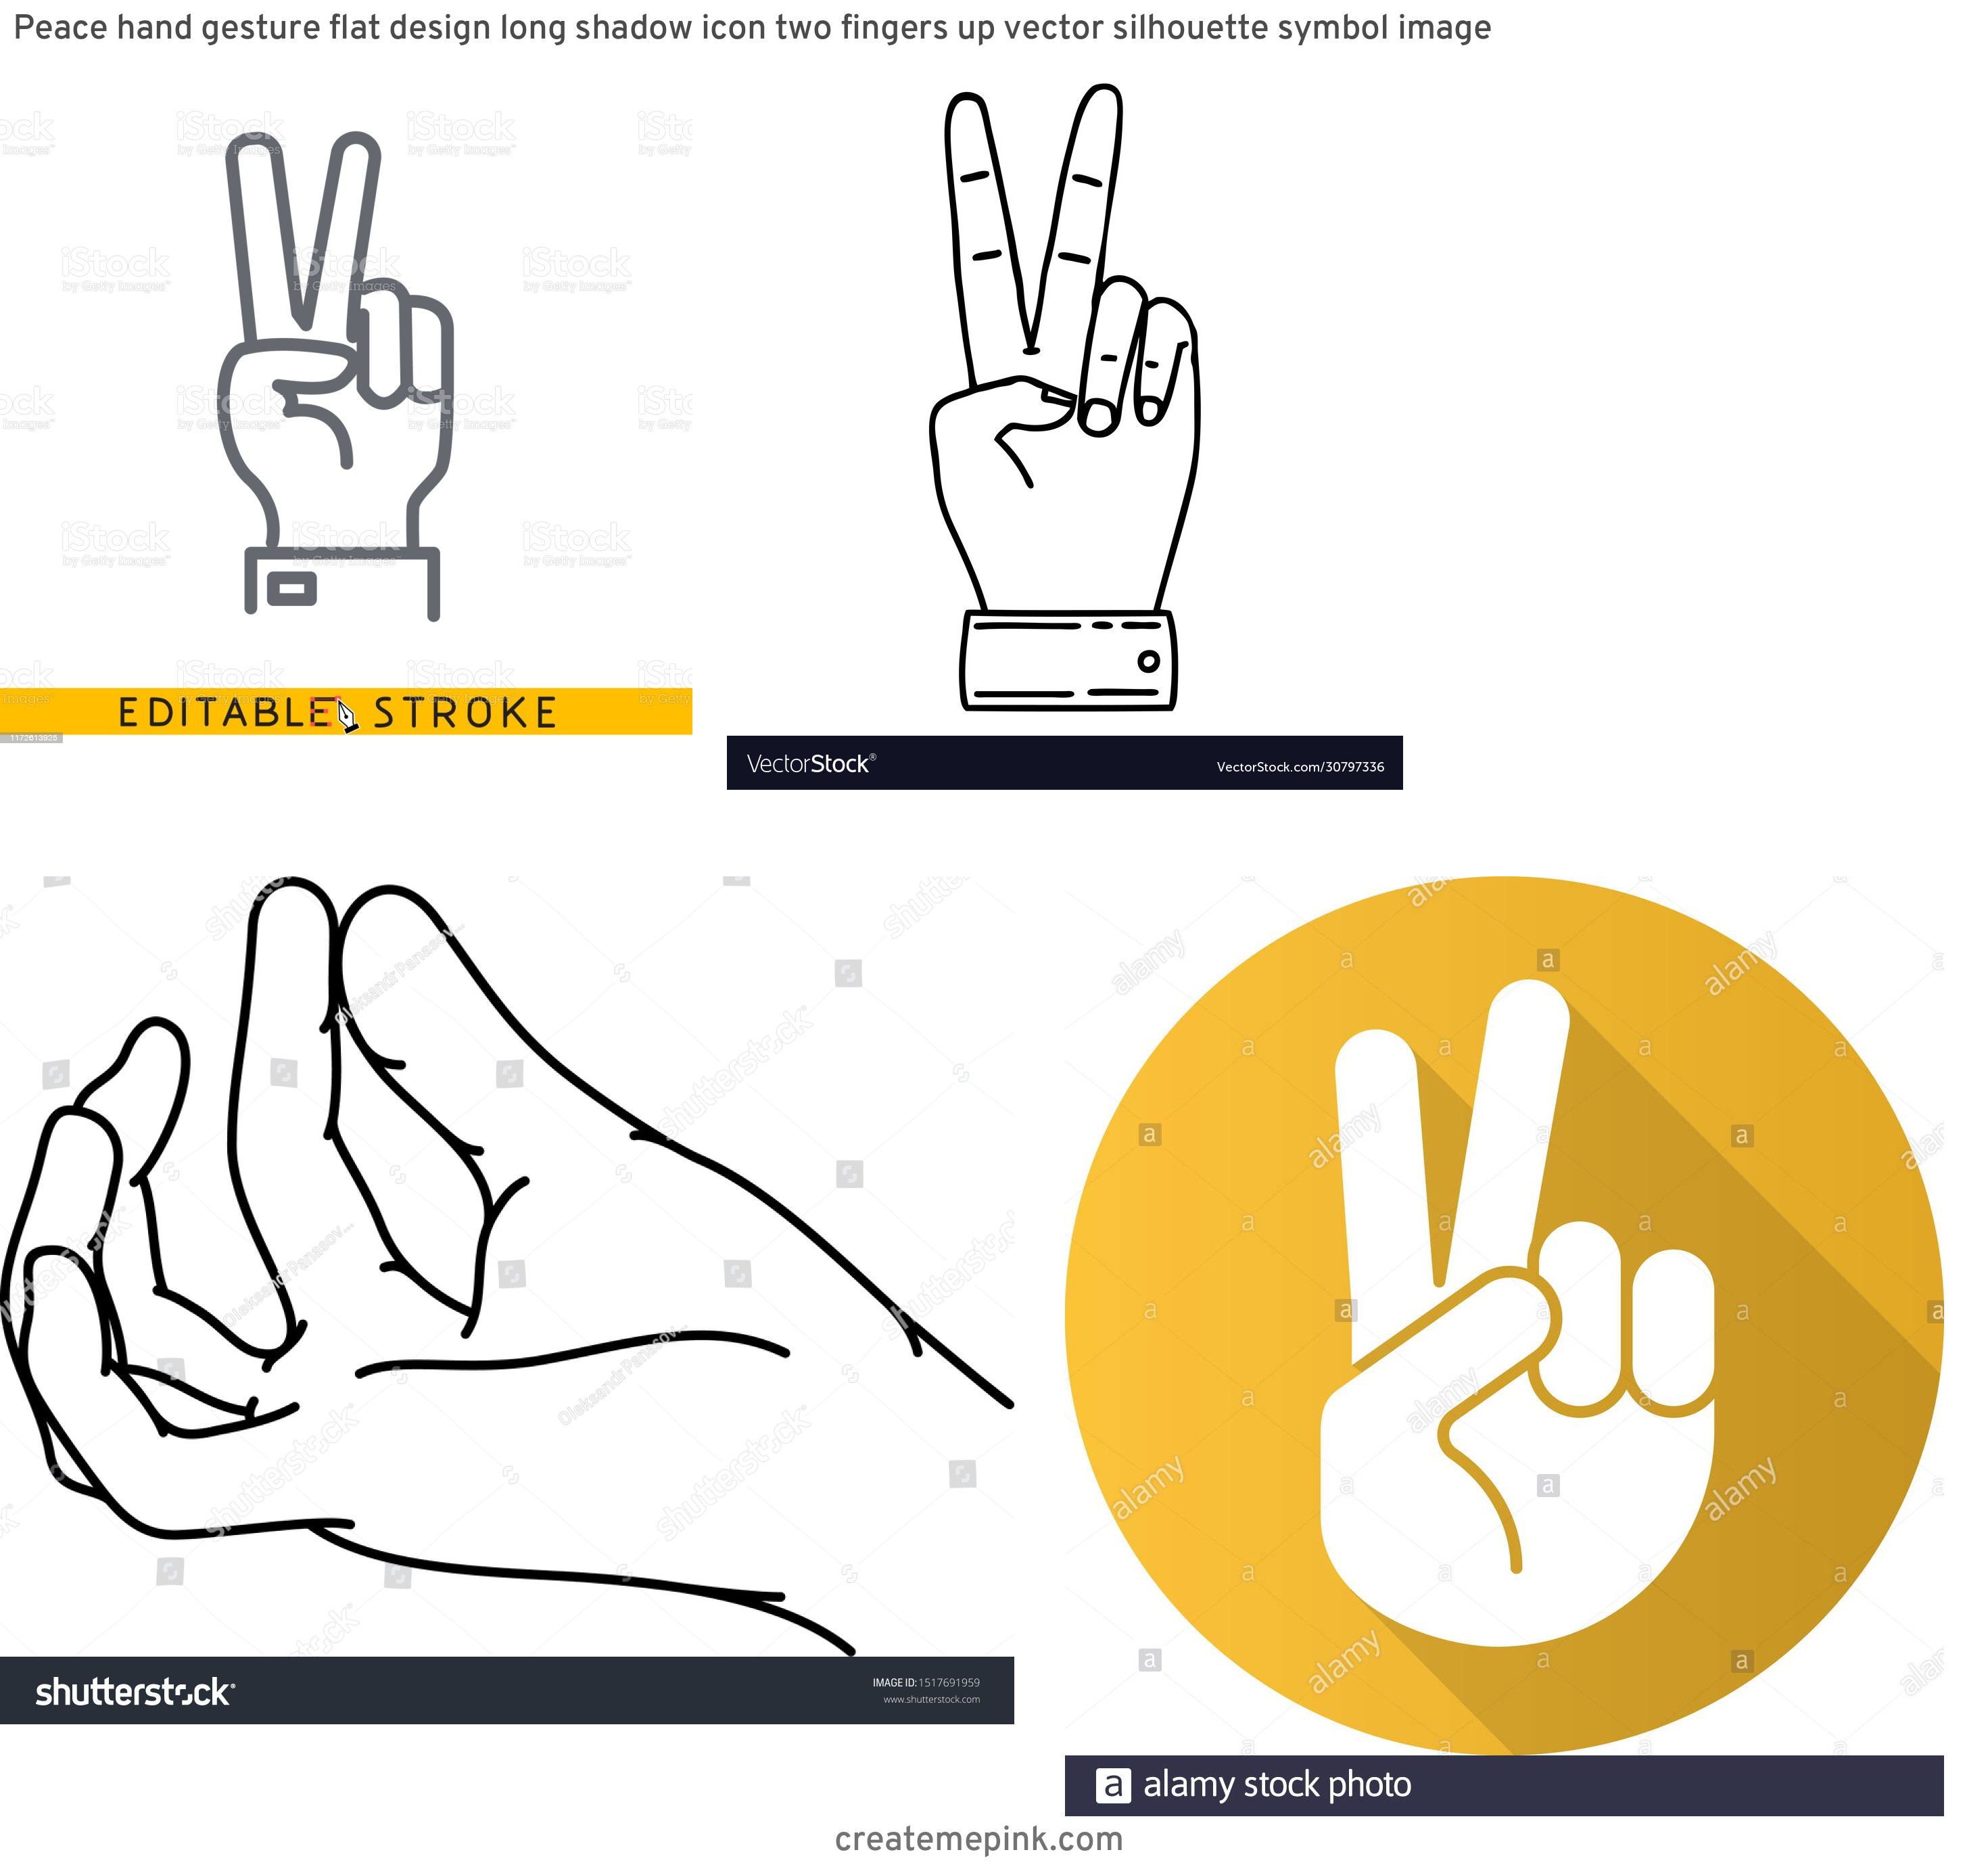 Two Finger Vector: Peace Hand Gesture Flat Design Long Shadow Icon Two Fingers Up Vector Silhouette Symbol Image